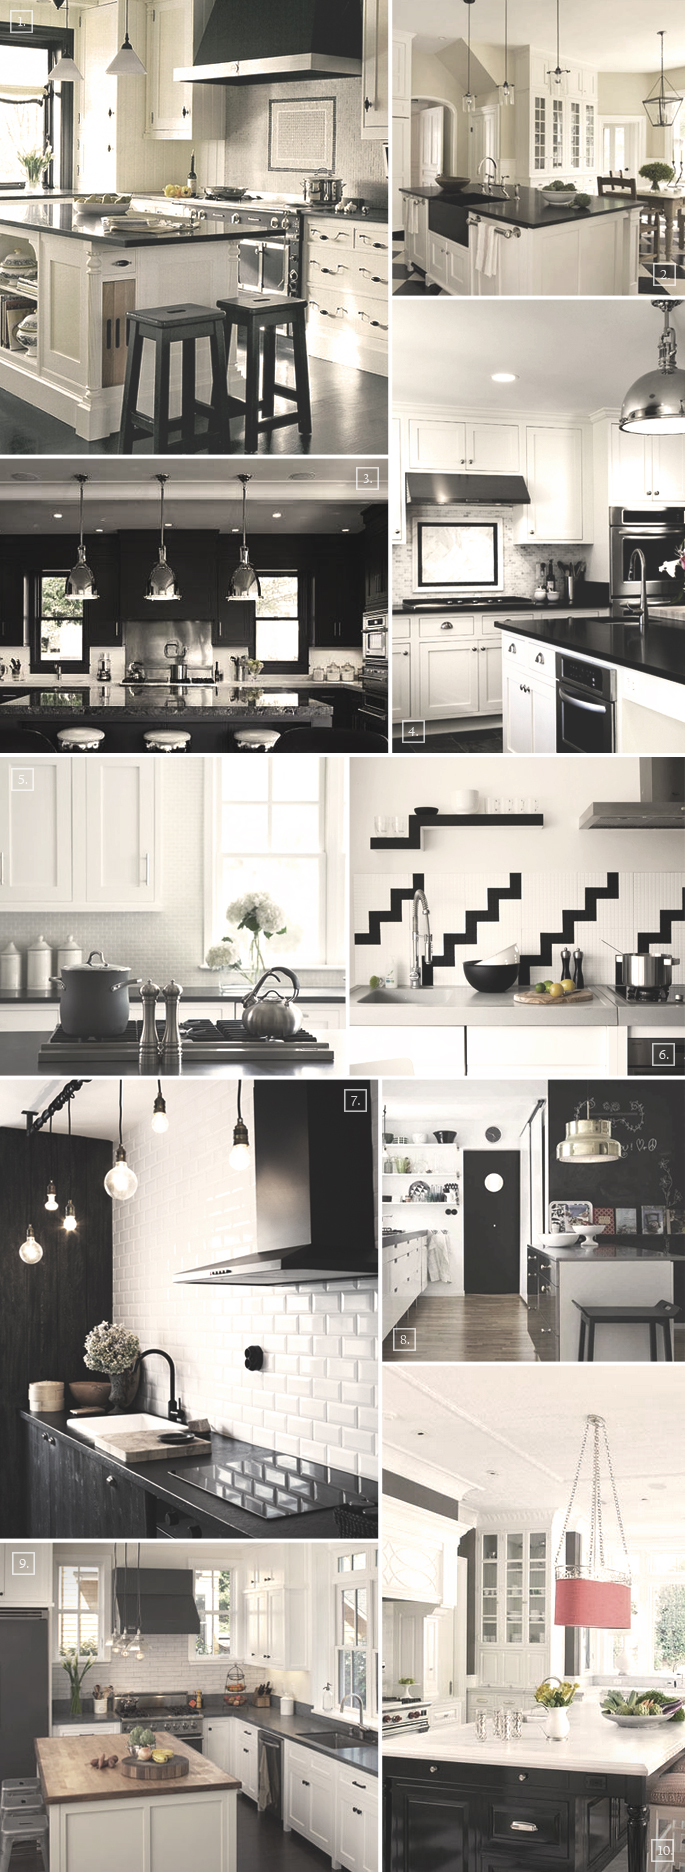 Black and white kitchen ideas and designs mood board - Black and white kitchen ideas ...